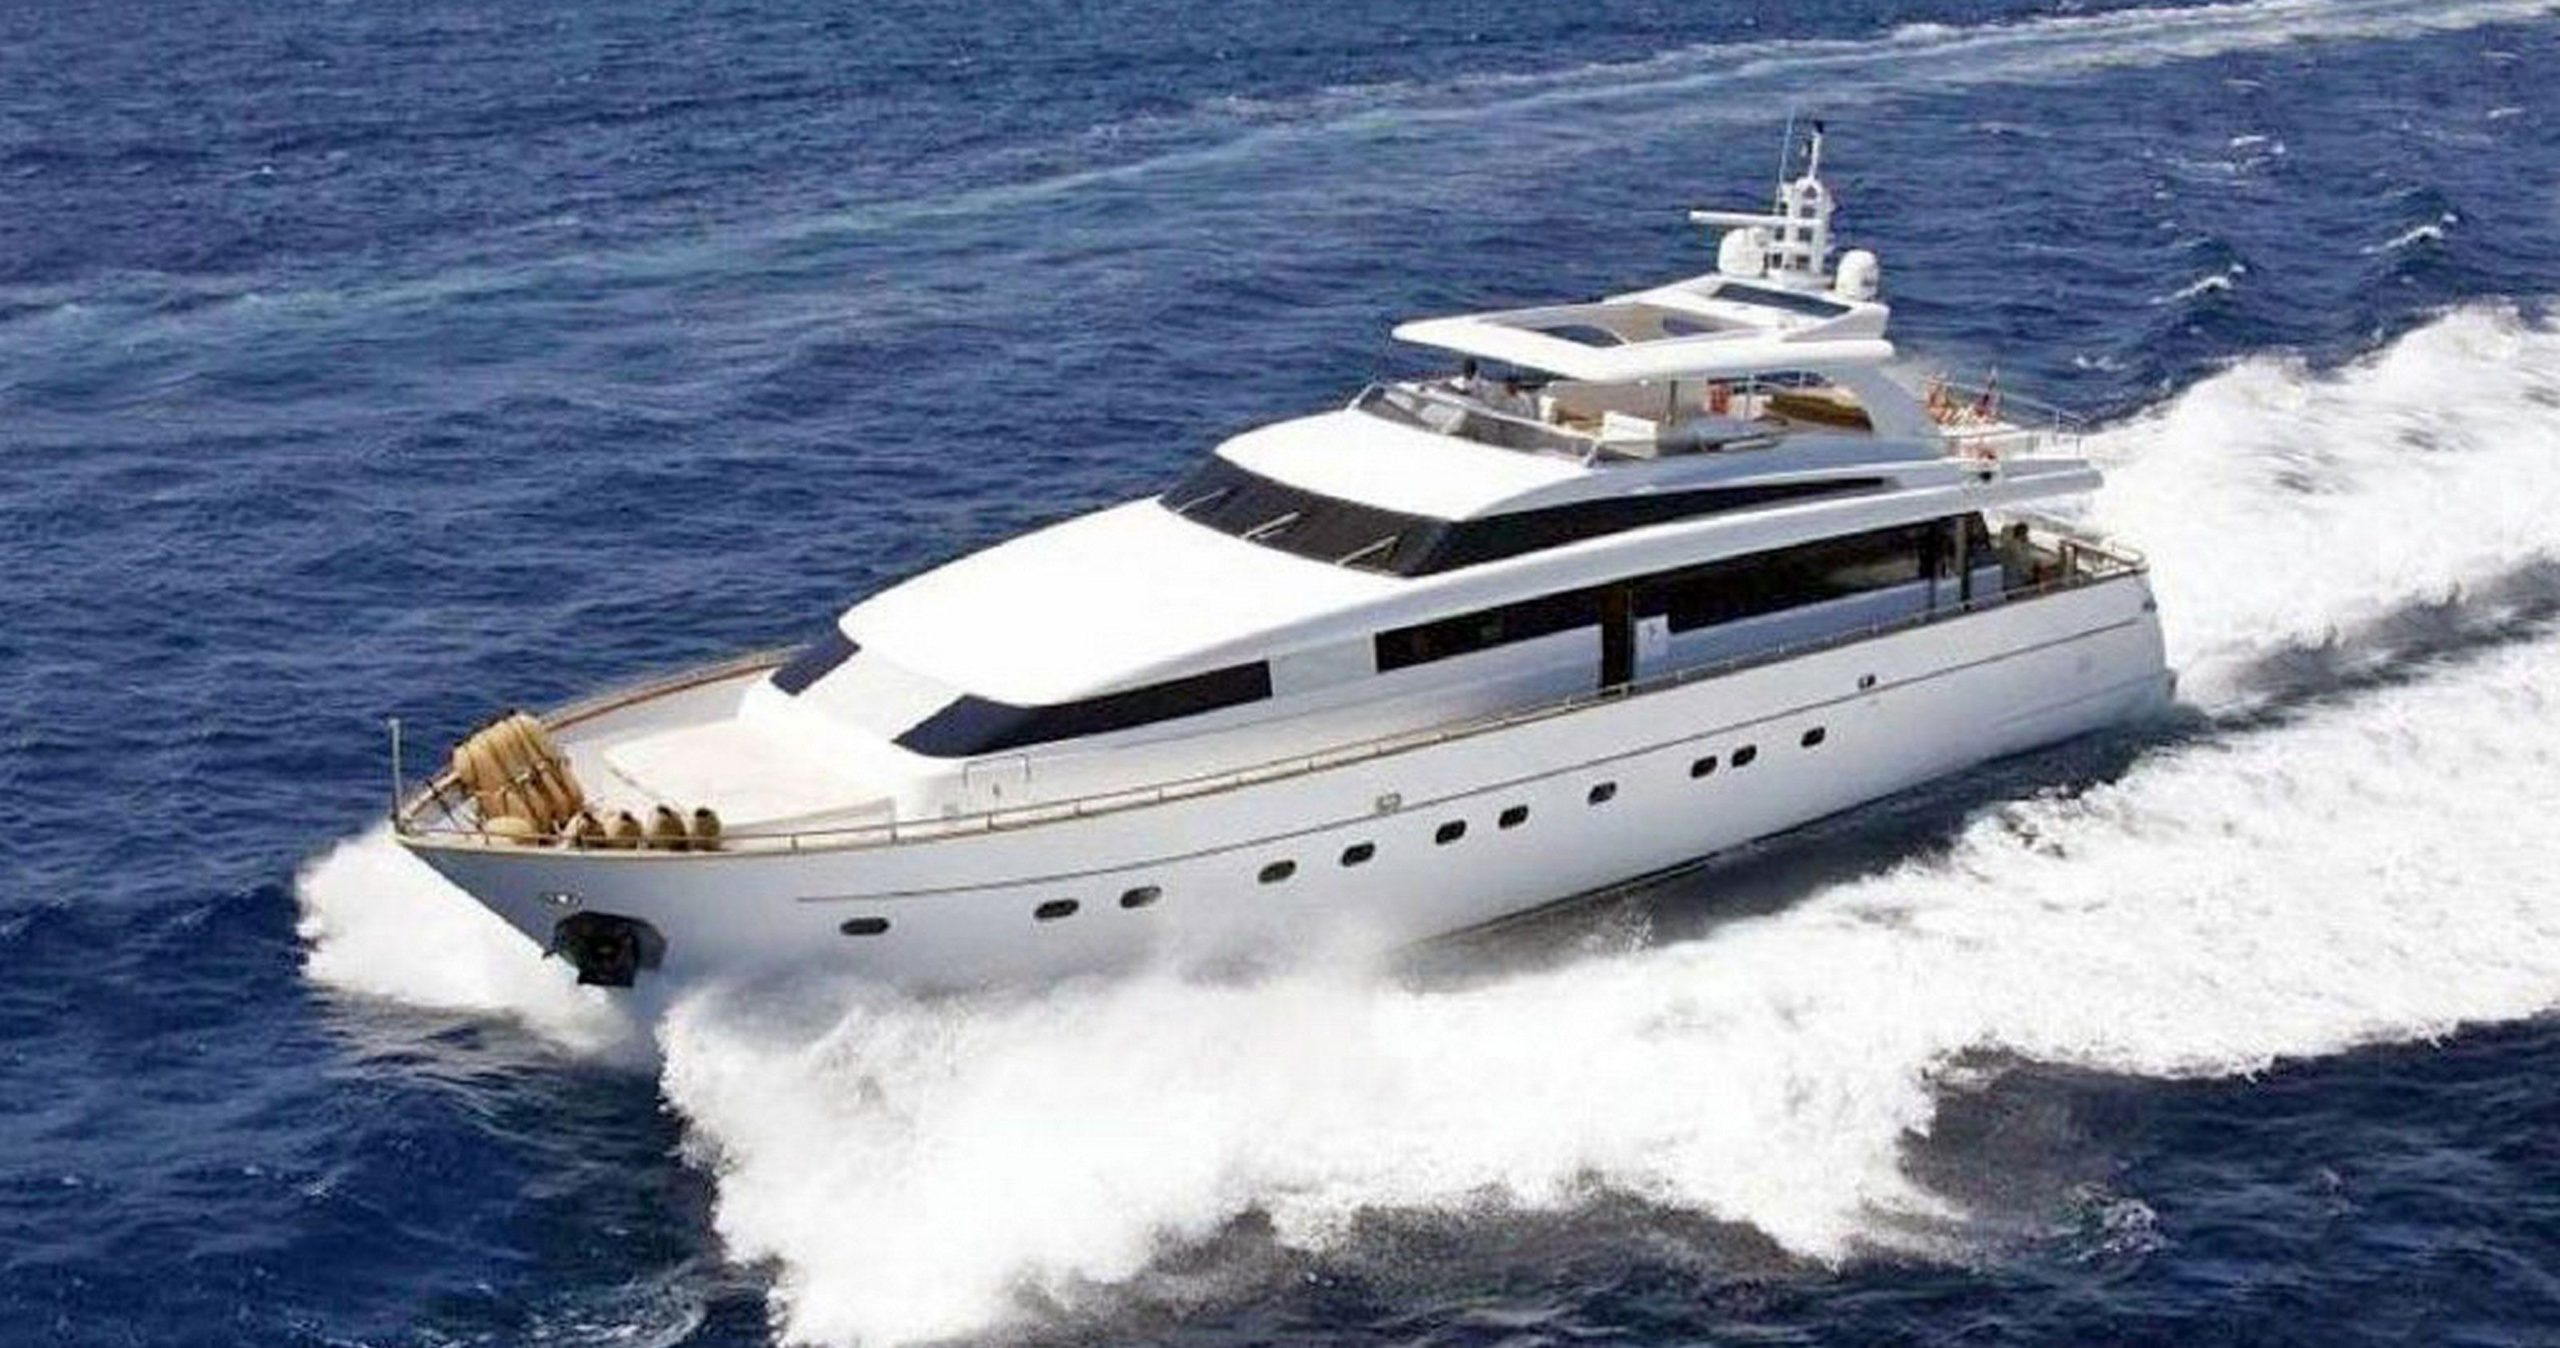 yachts for sale scaled